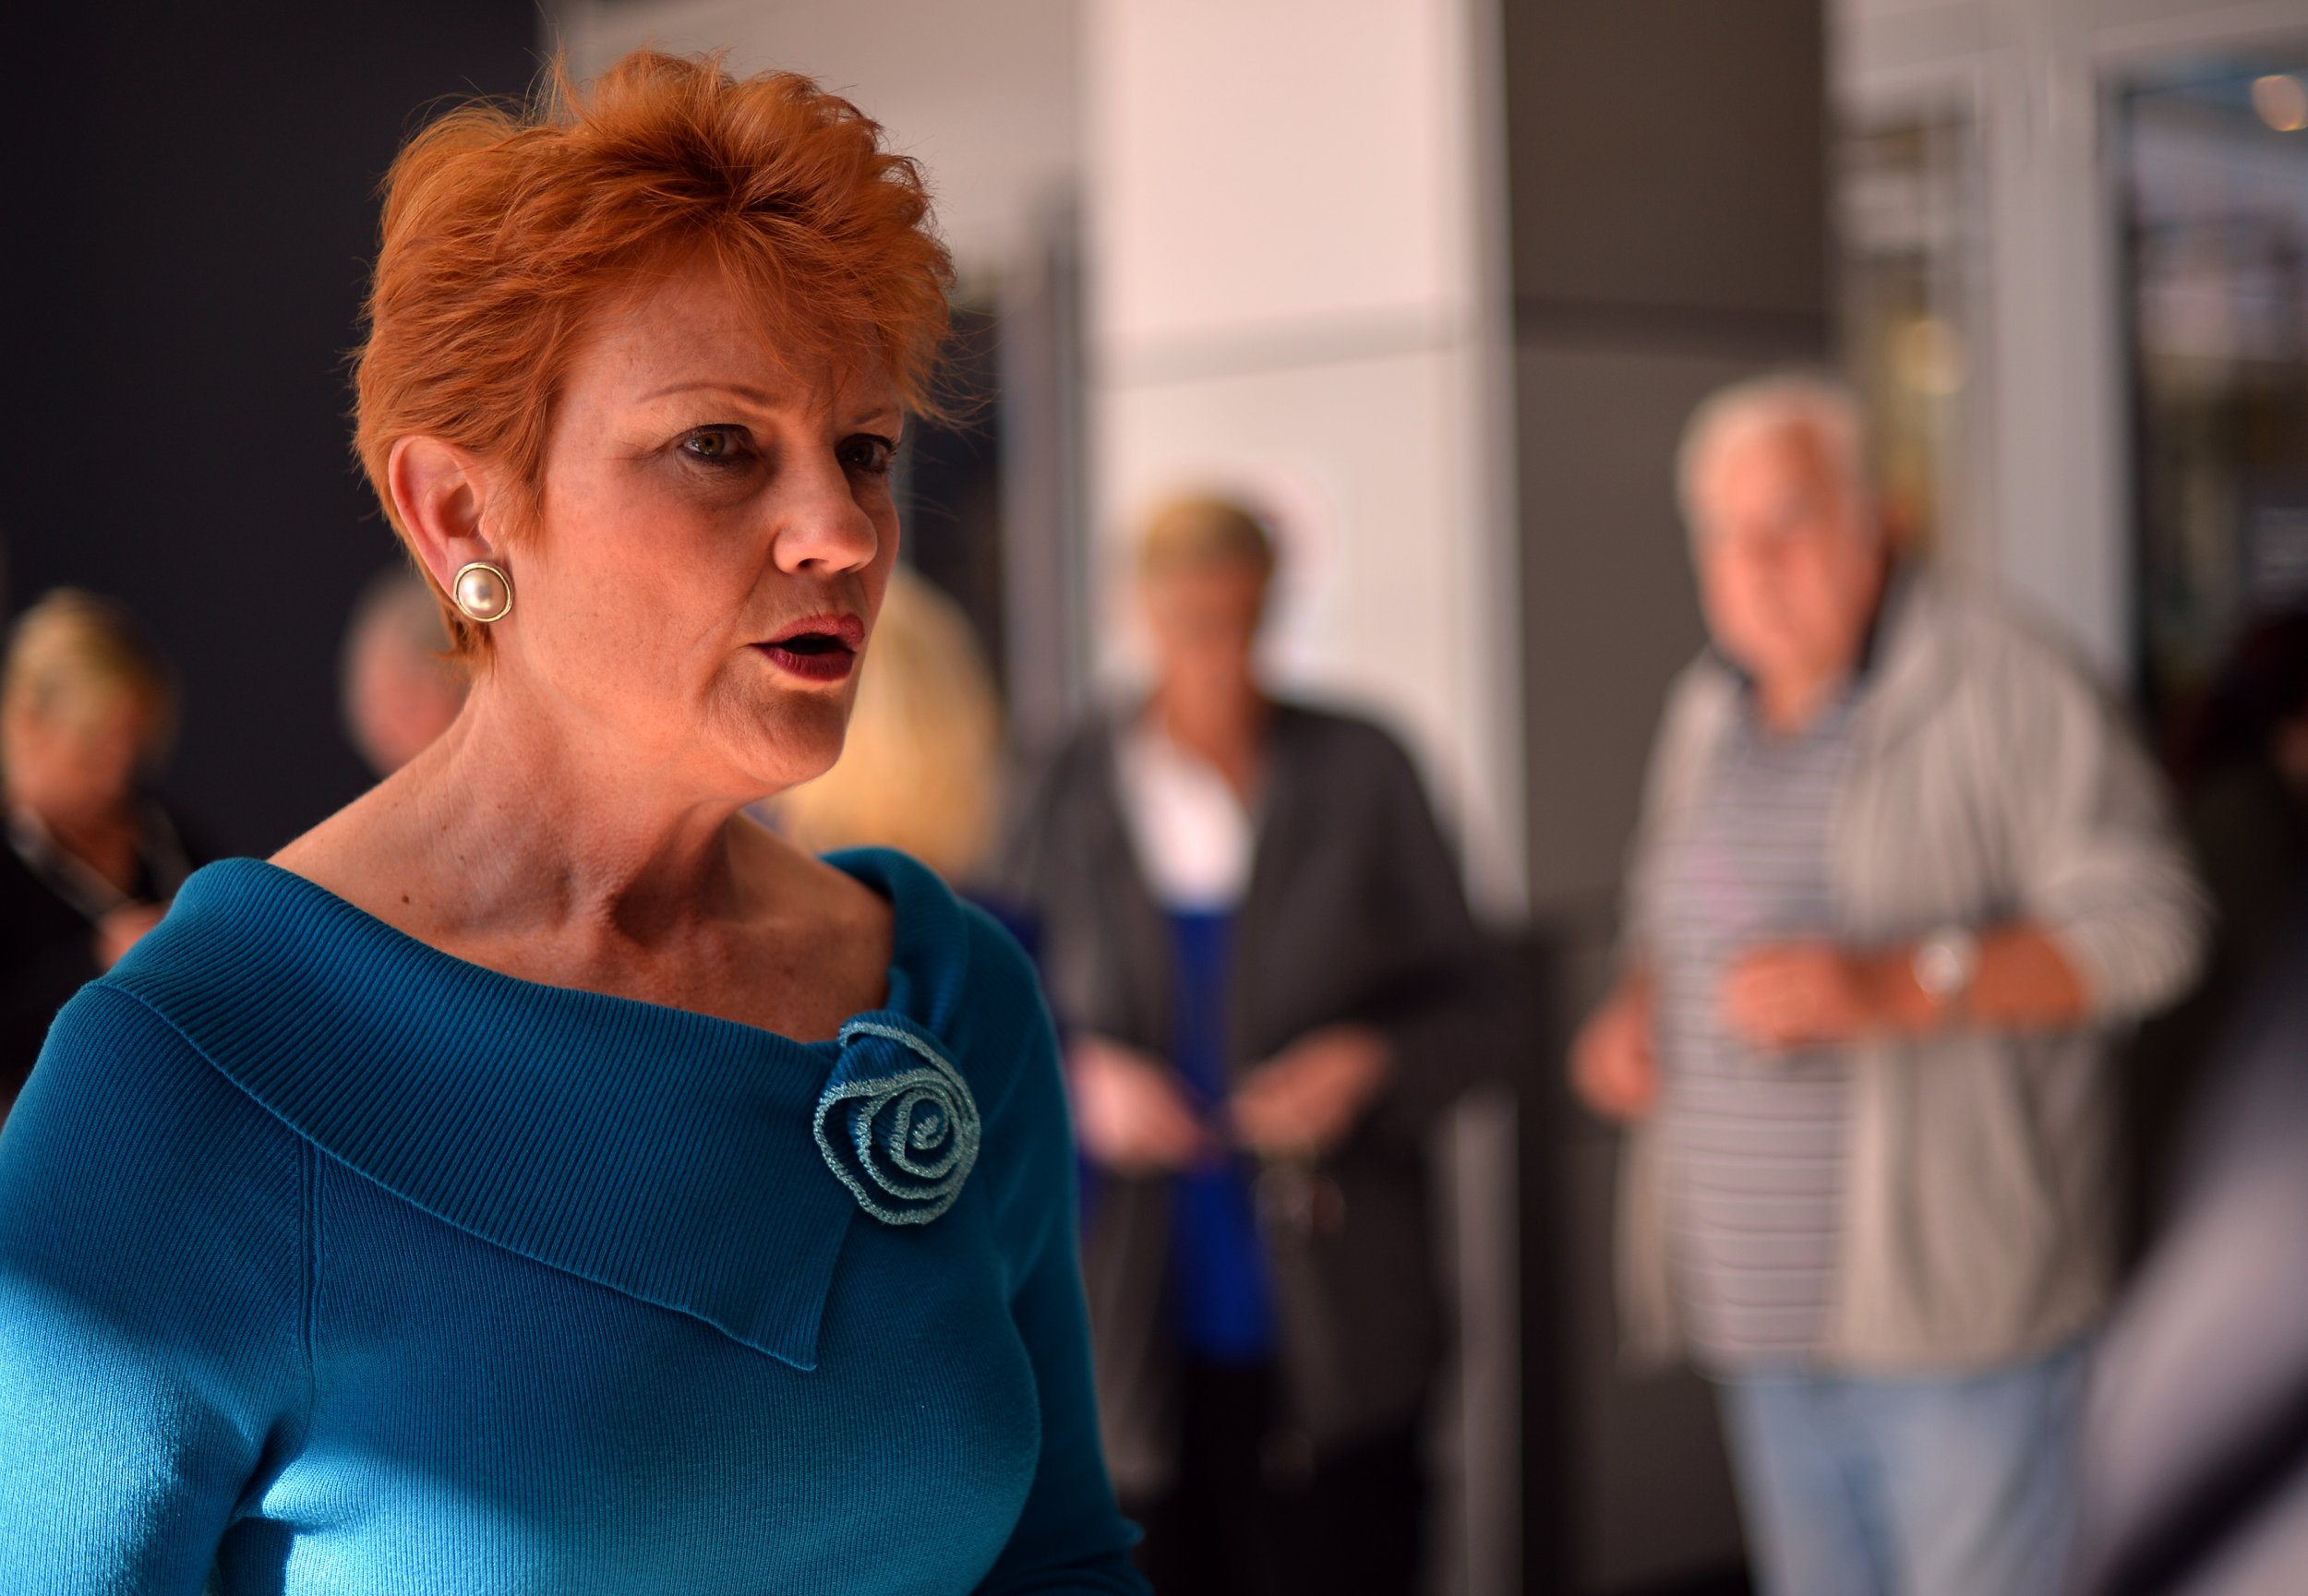 Australia's One Nation leader Pauline Hanson